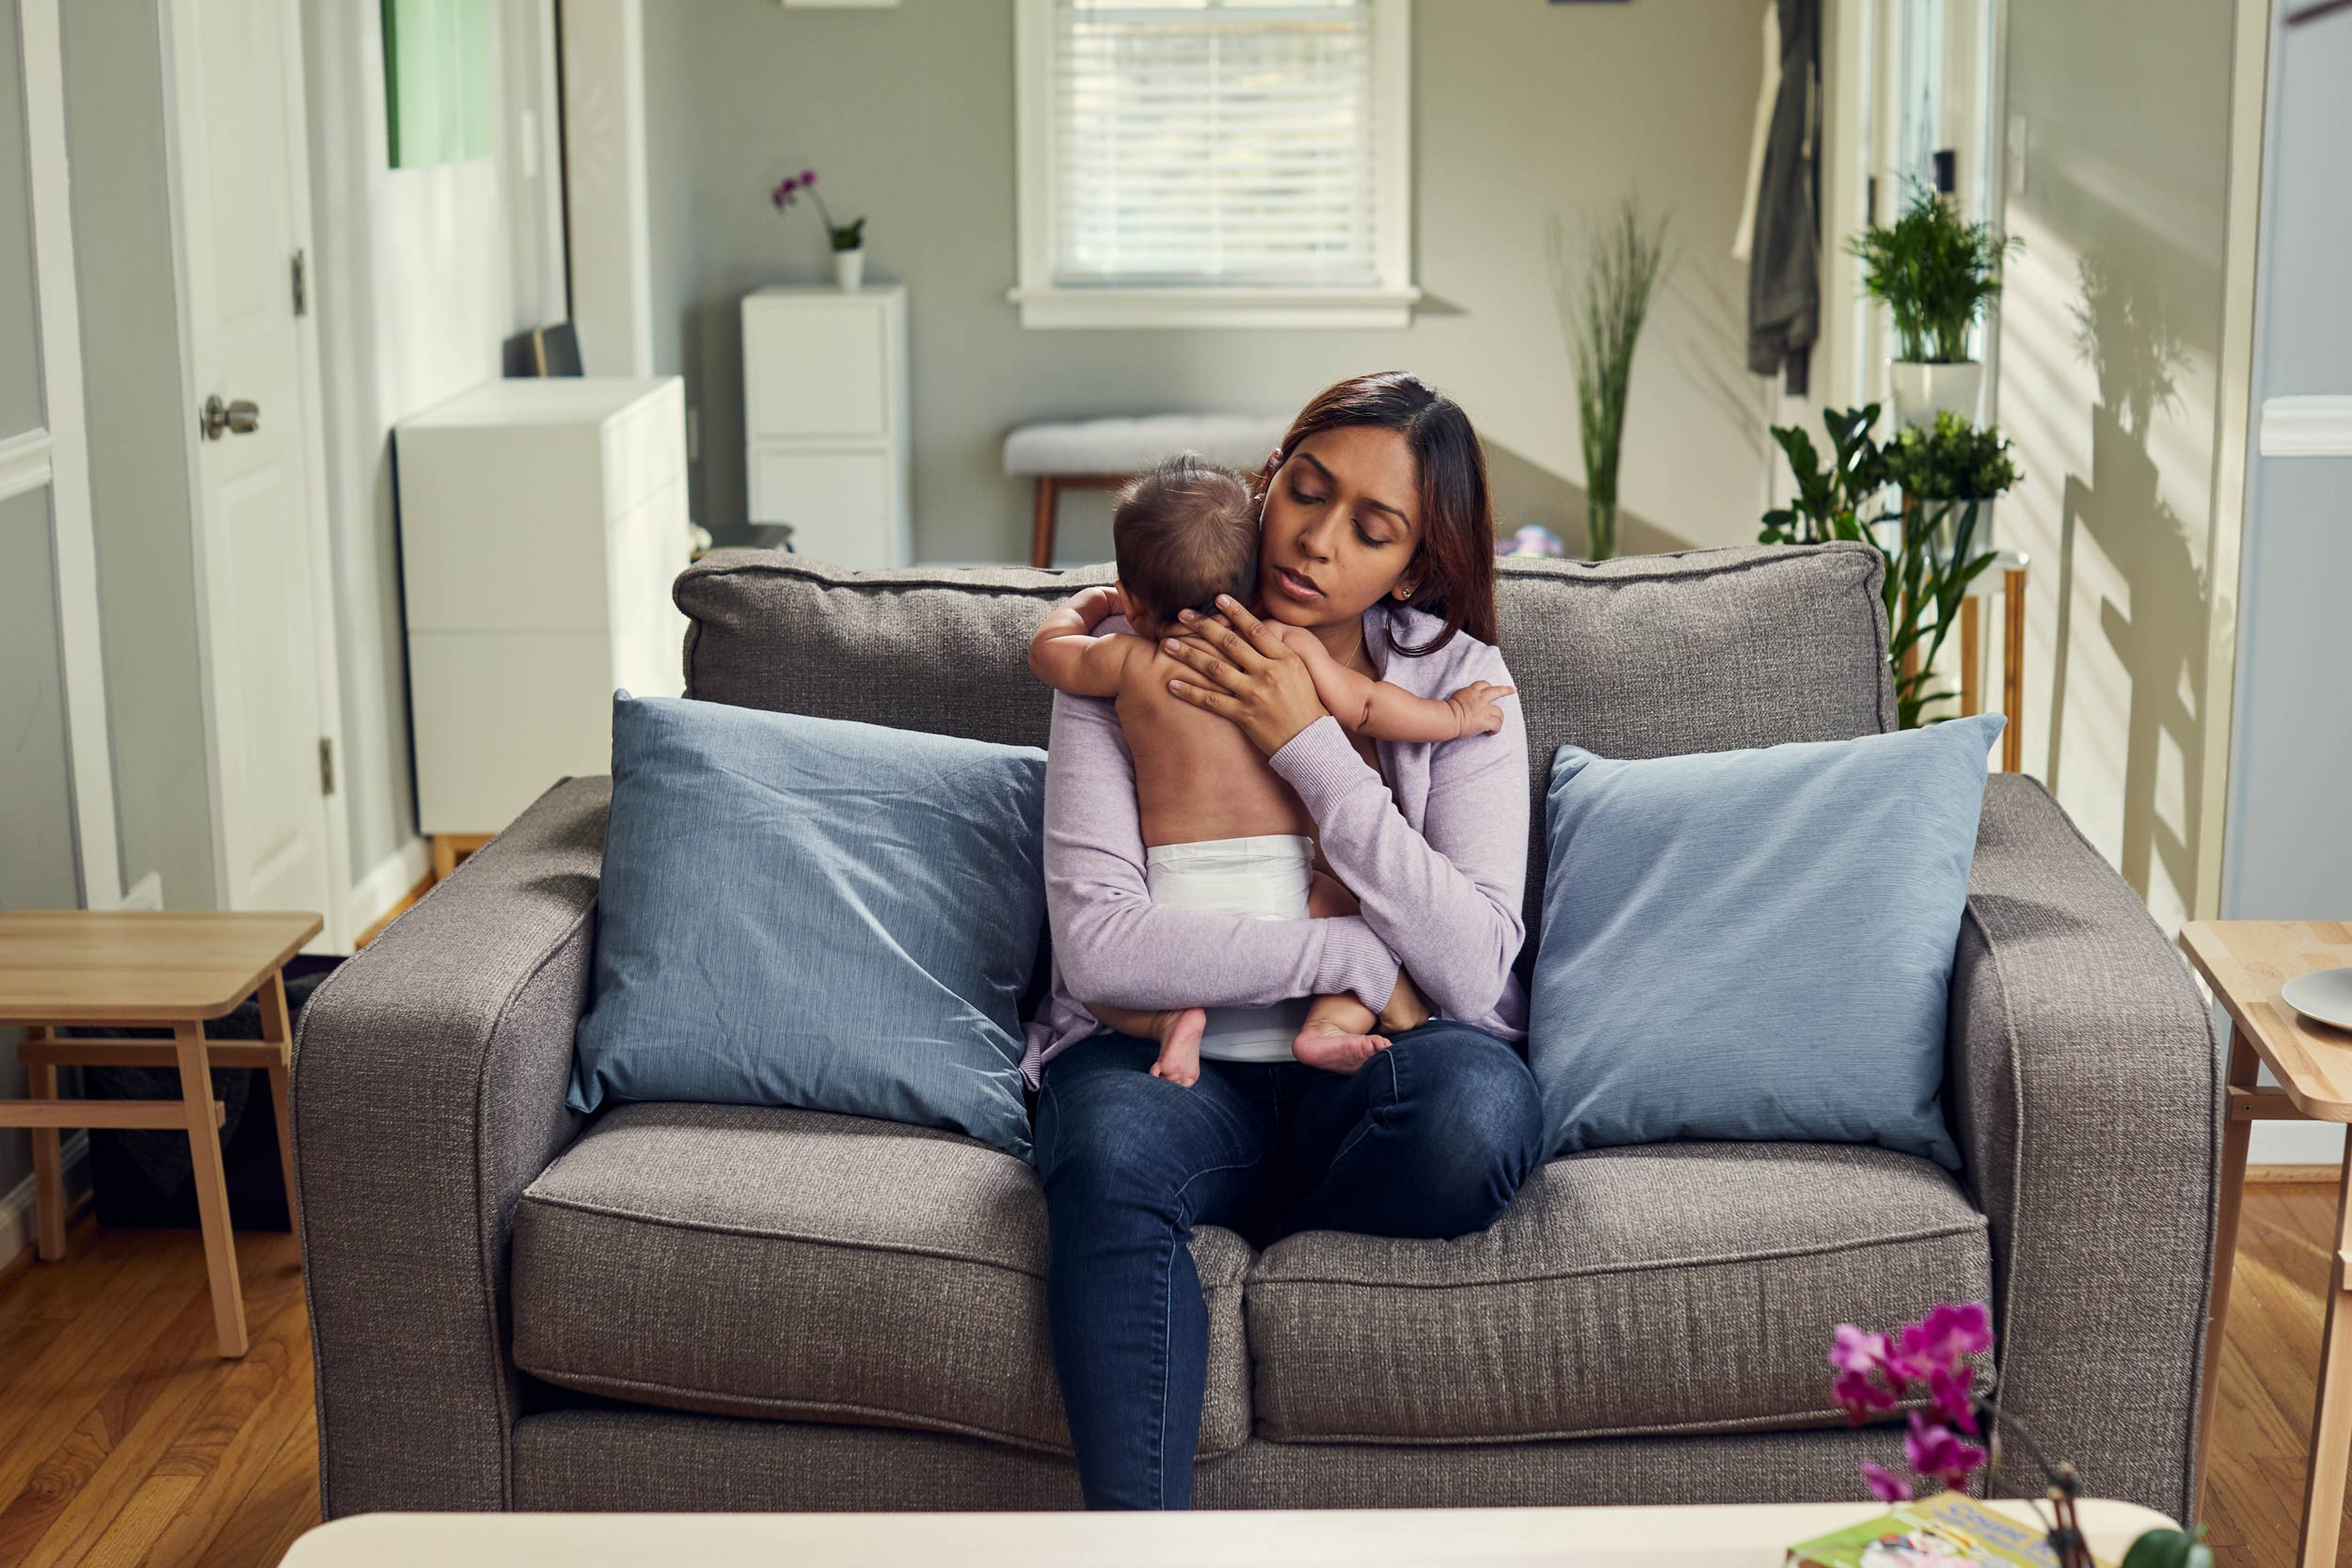 mom comforting baby on couch in living room, washington dc commercial photography